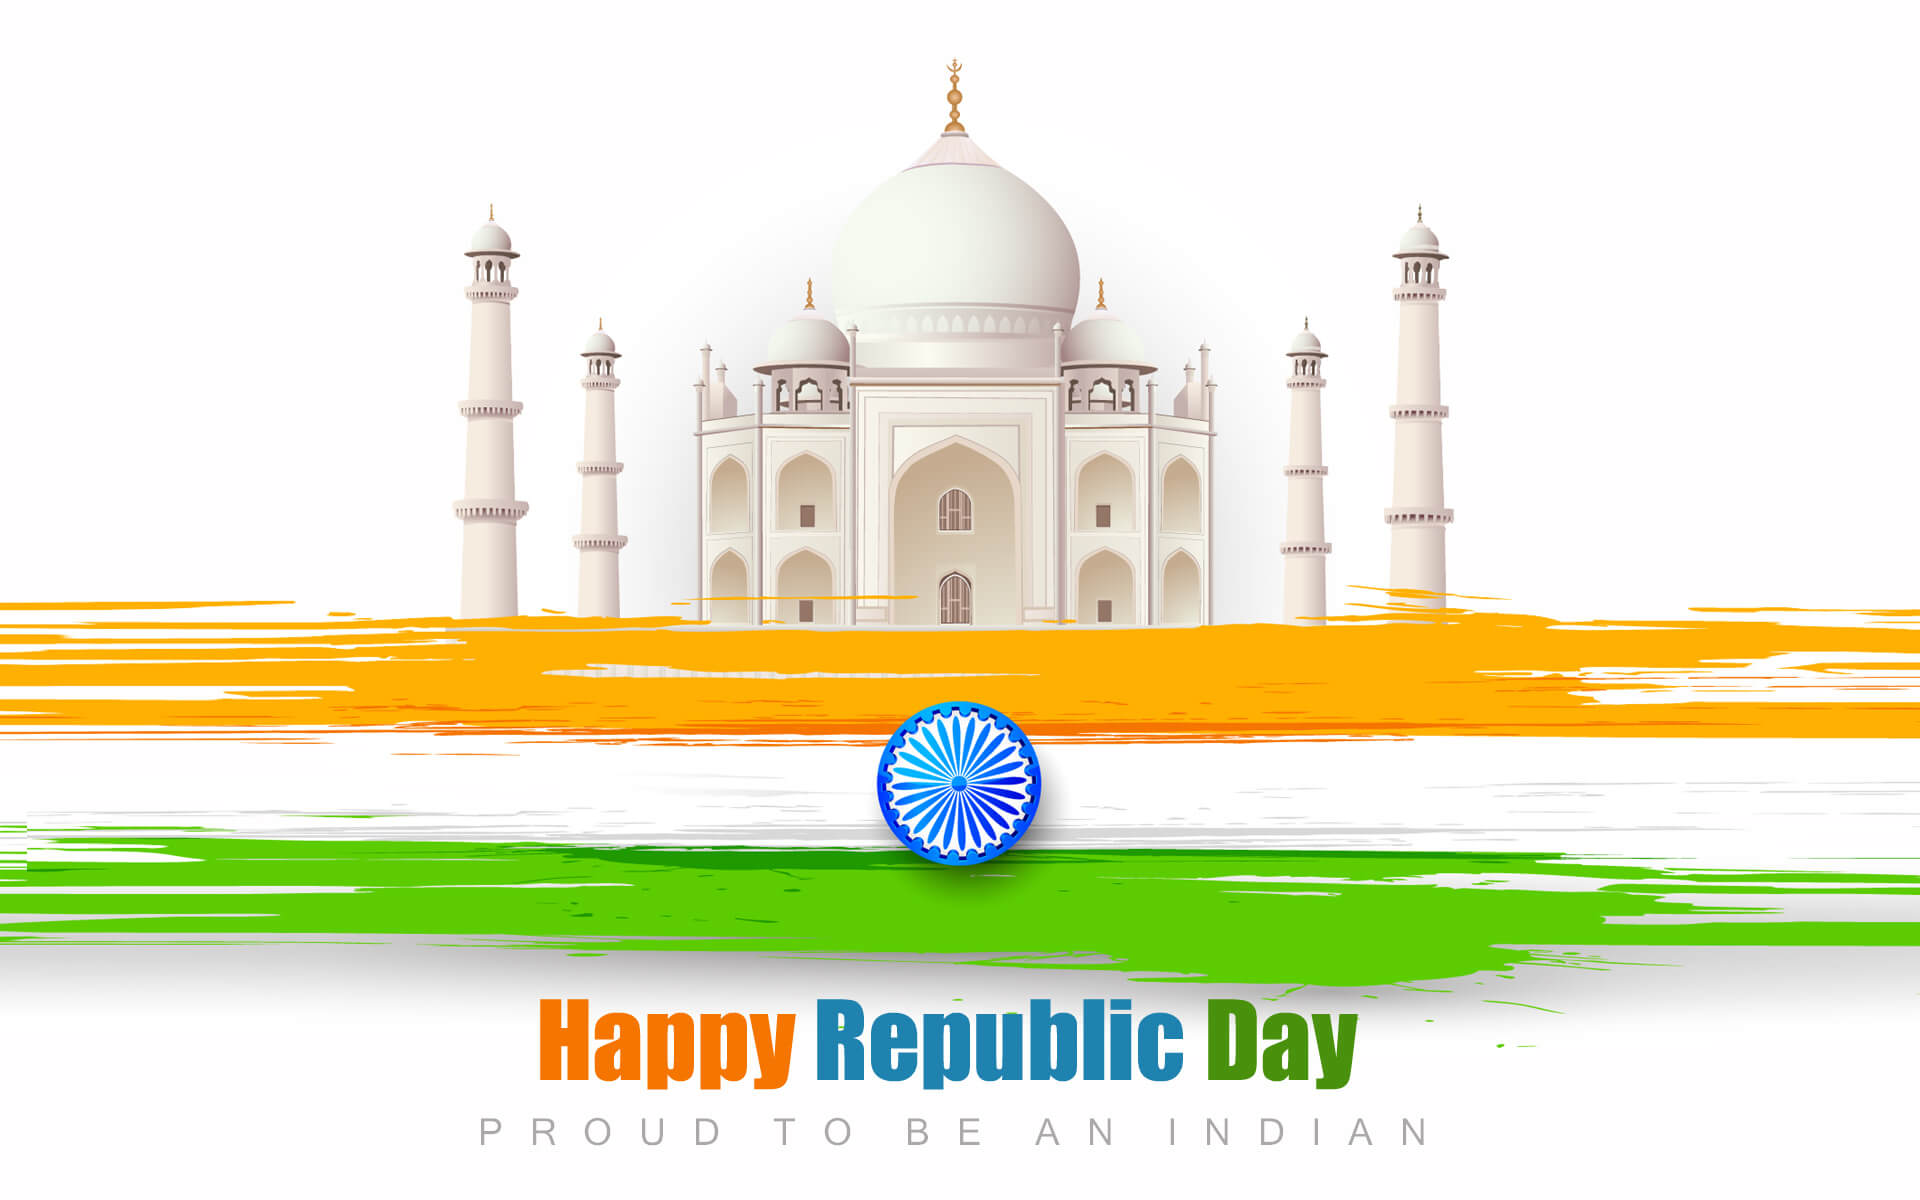 happy republic day wishes india january 26 proud to be an indian hd pc wallpaper